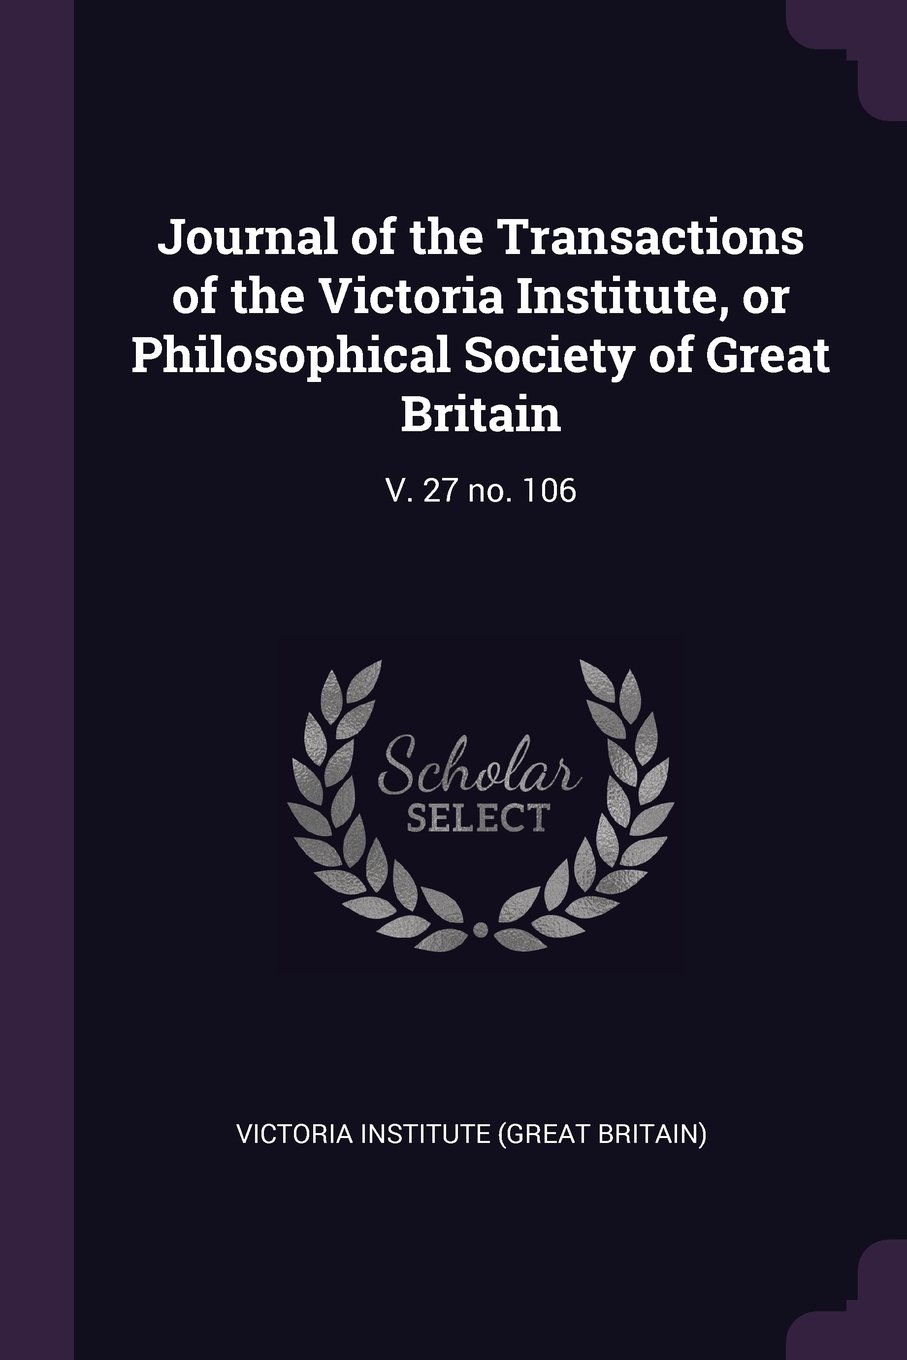 Journal of the Transactions of the Victoria Institute, or Philosophical Society of Great Britain: V. 27 No. 106 PDF